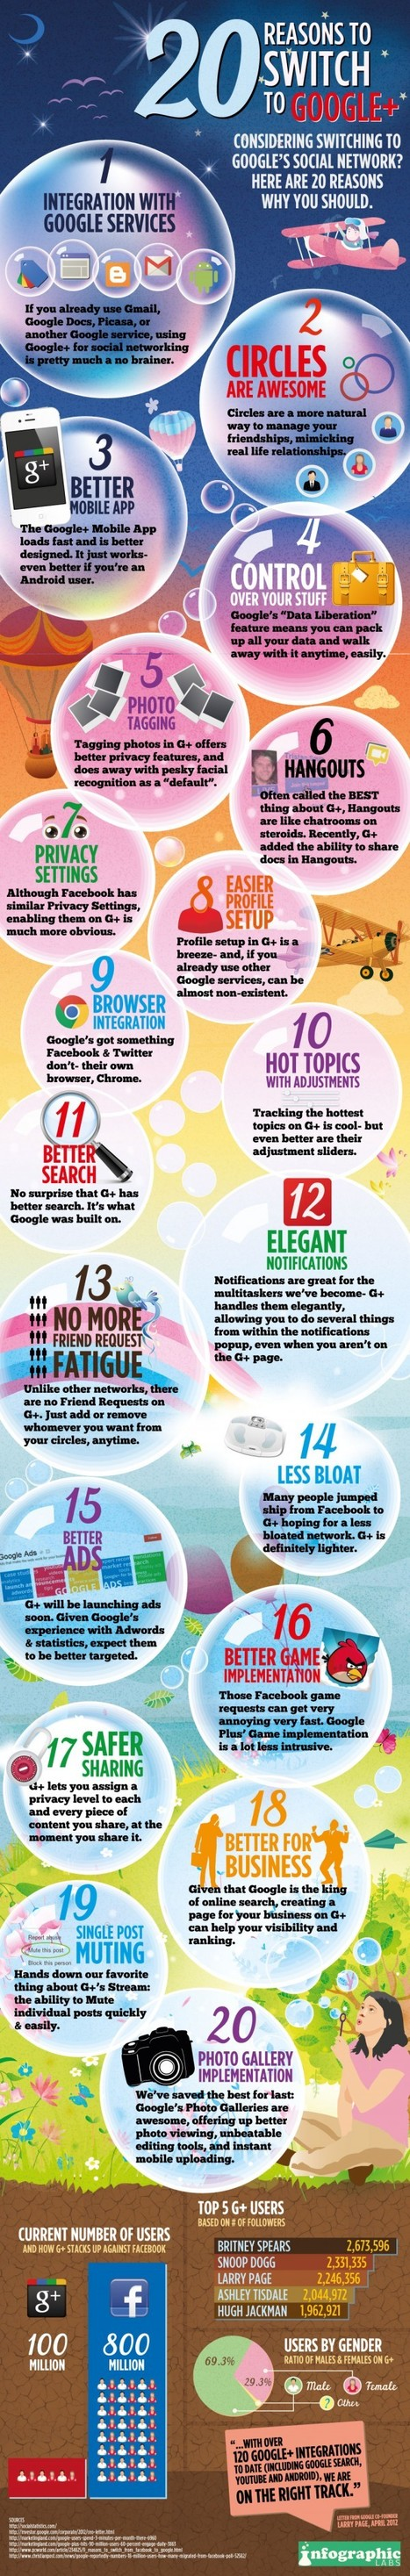 #Infographic :20 Best Reasons to Switch to Google+ Plus for More Profits | Social Media e Innovación Tecnológica | Scoop.it